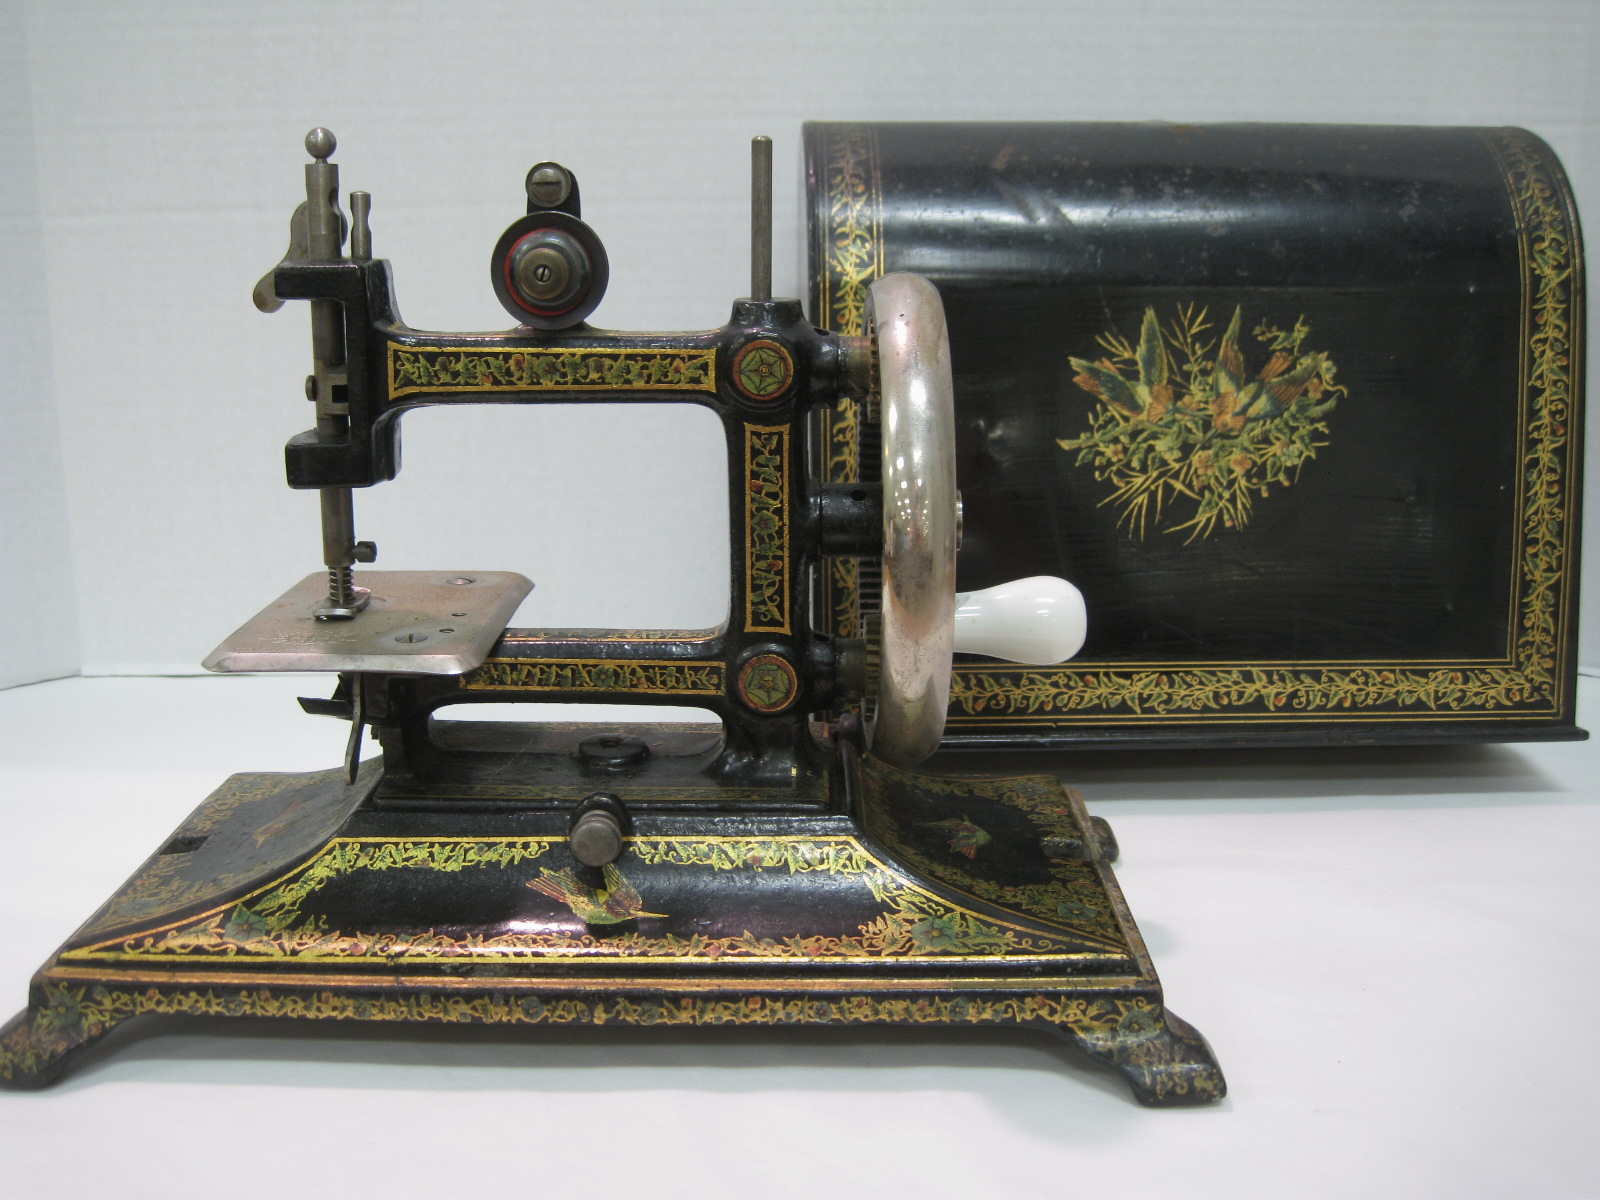 Antique sewing machines this is an antique sewing machine sciox Choice Image